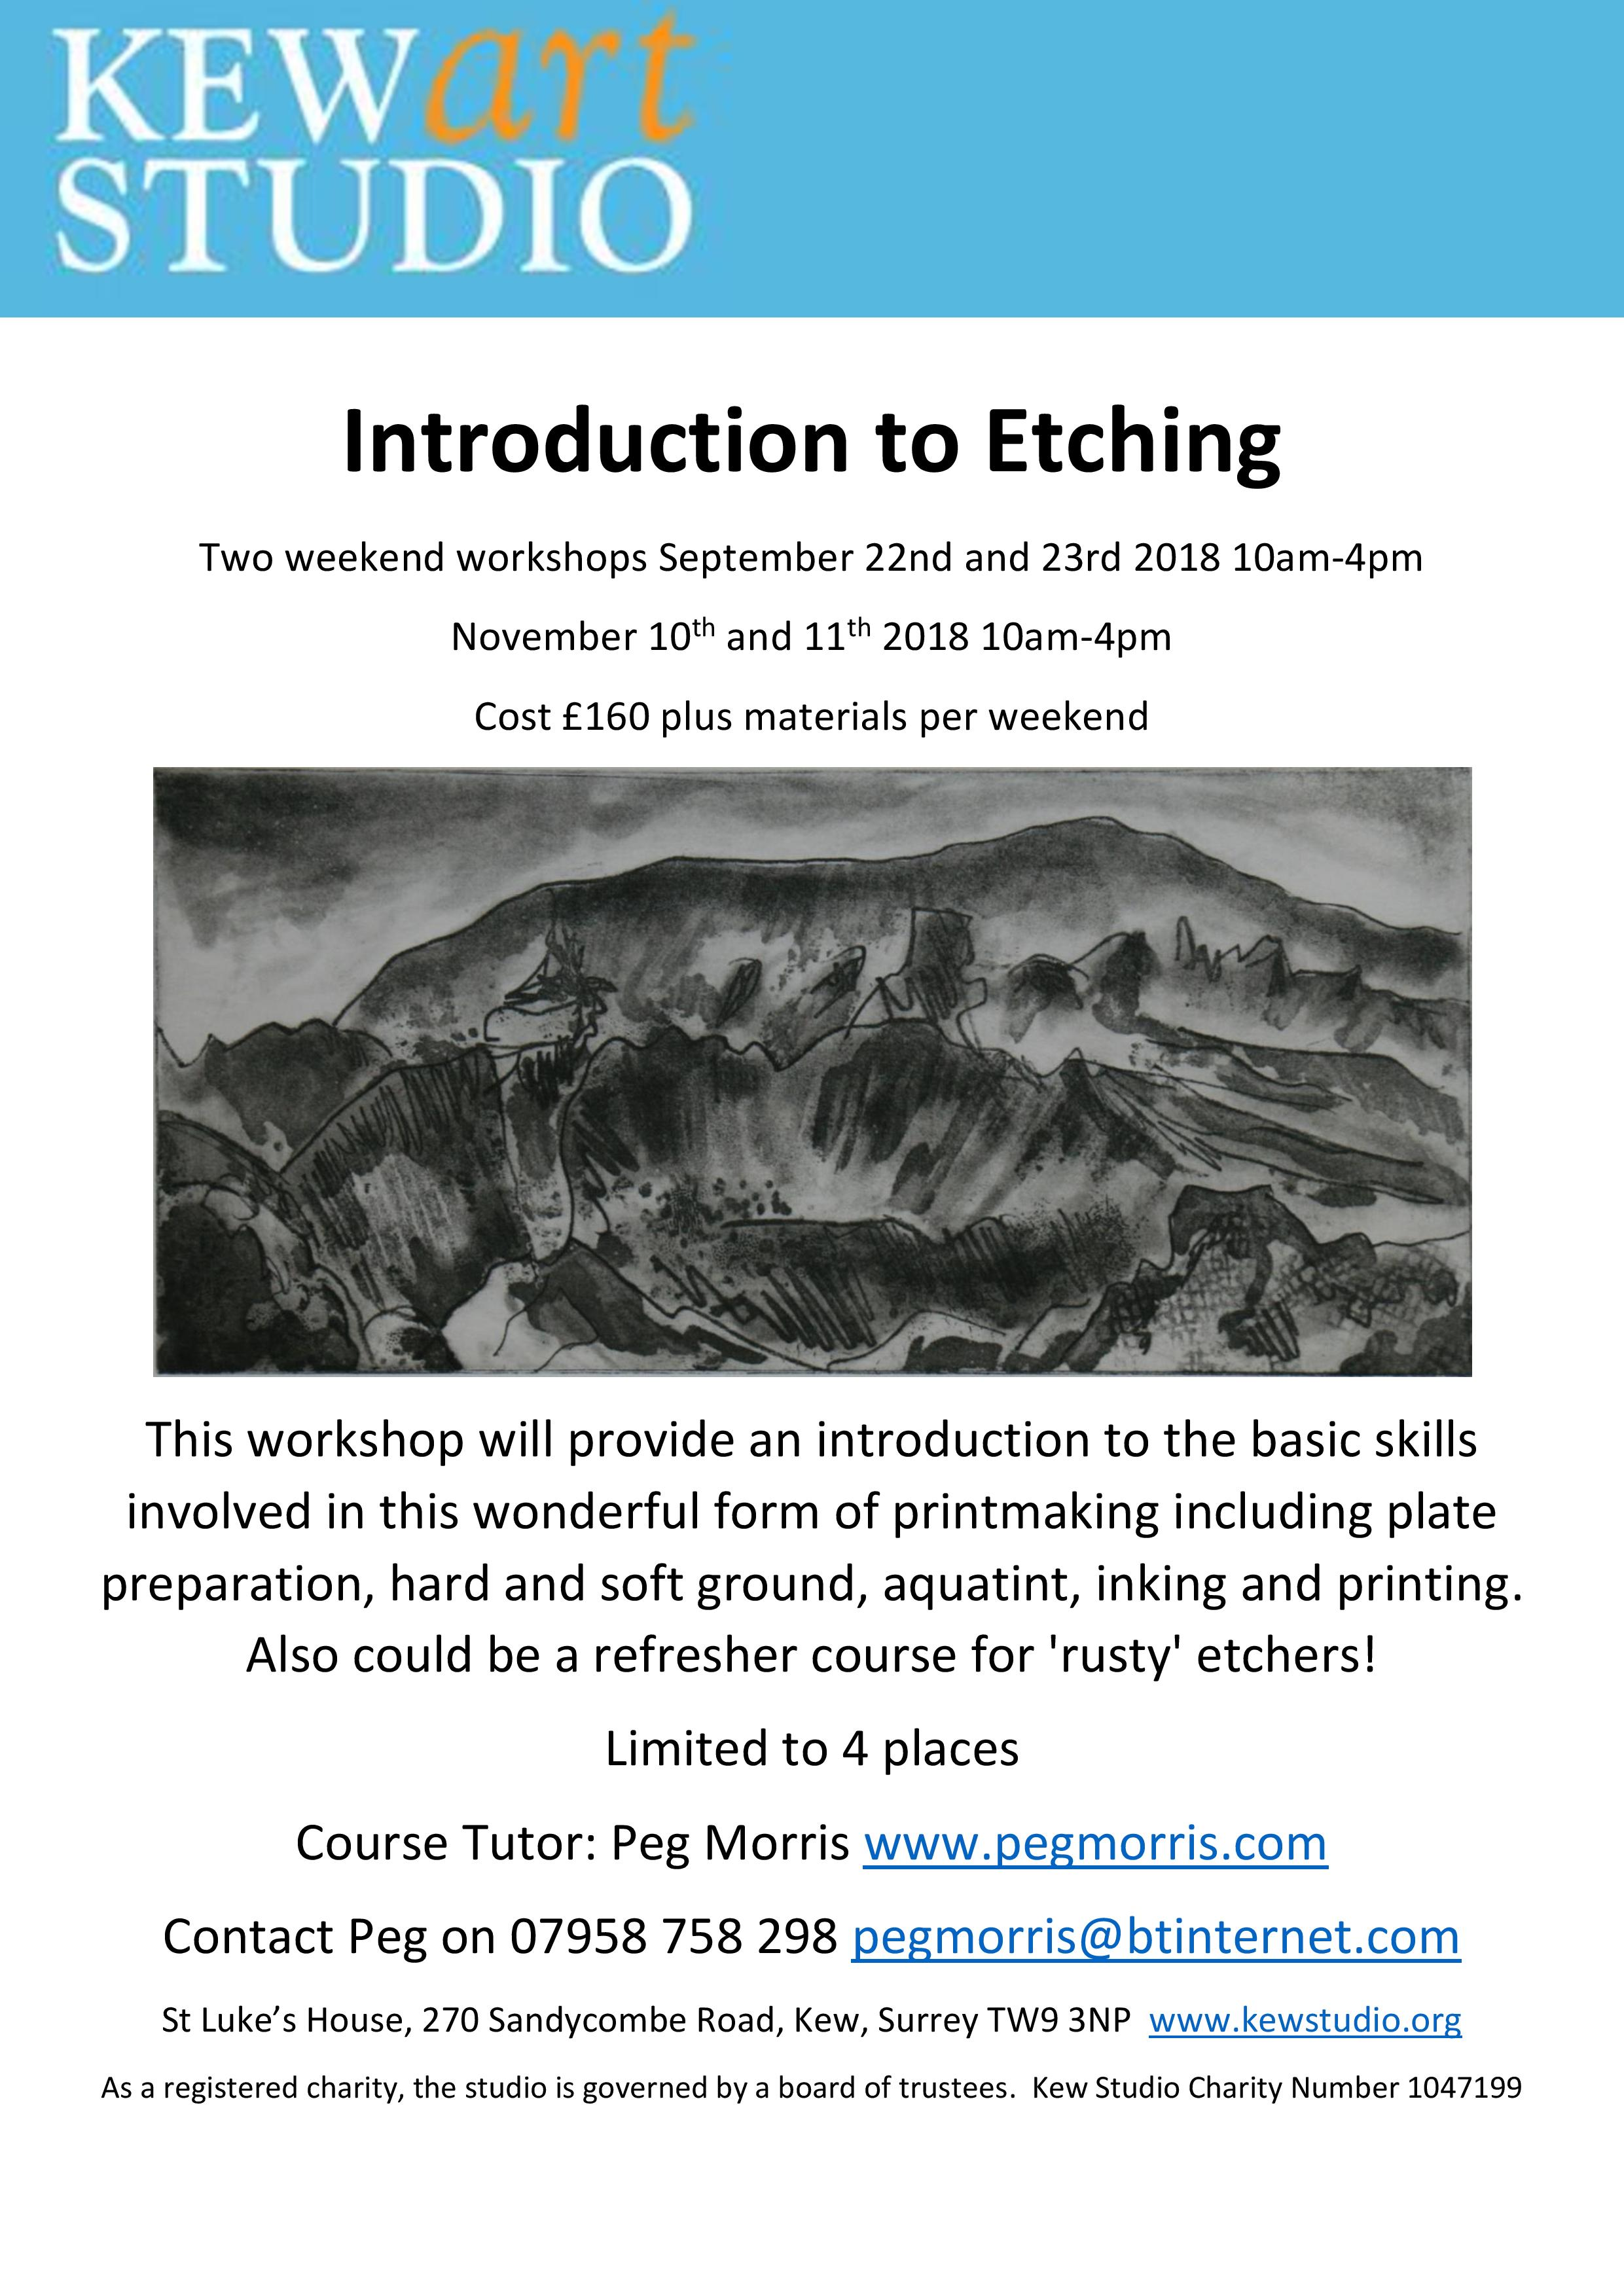 Introduction to Etching weekends September and November 2018-page-001